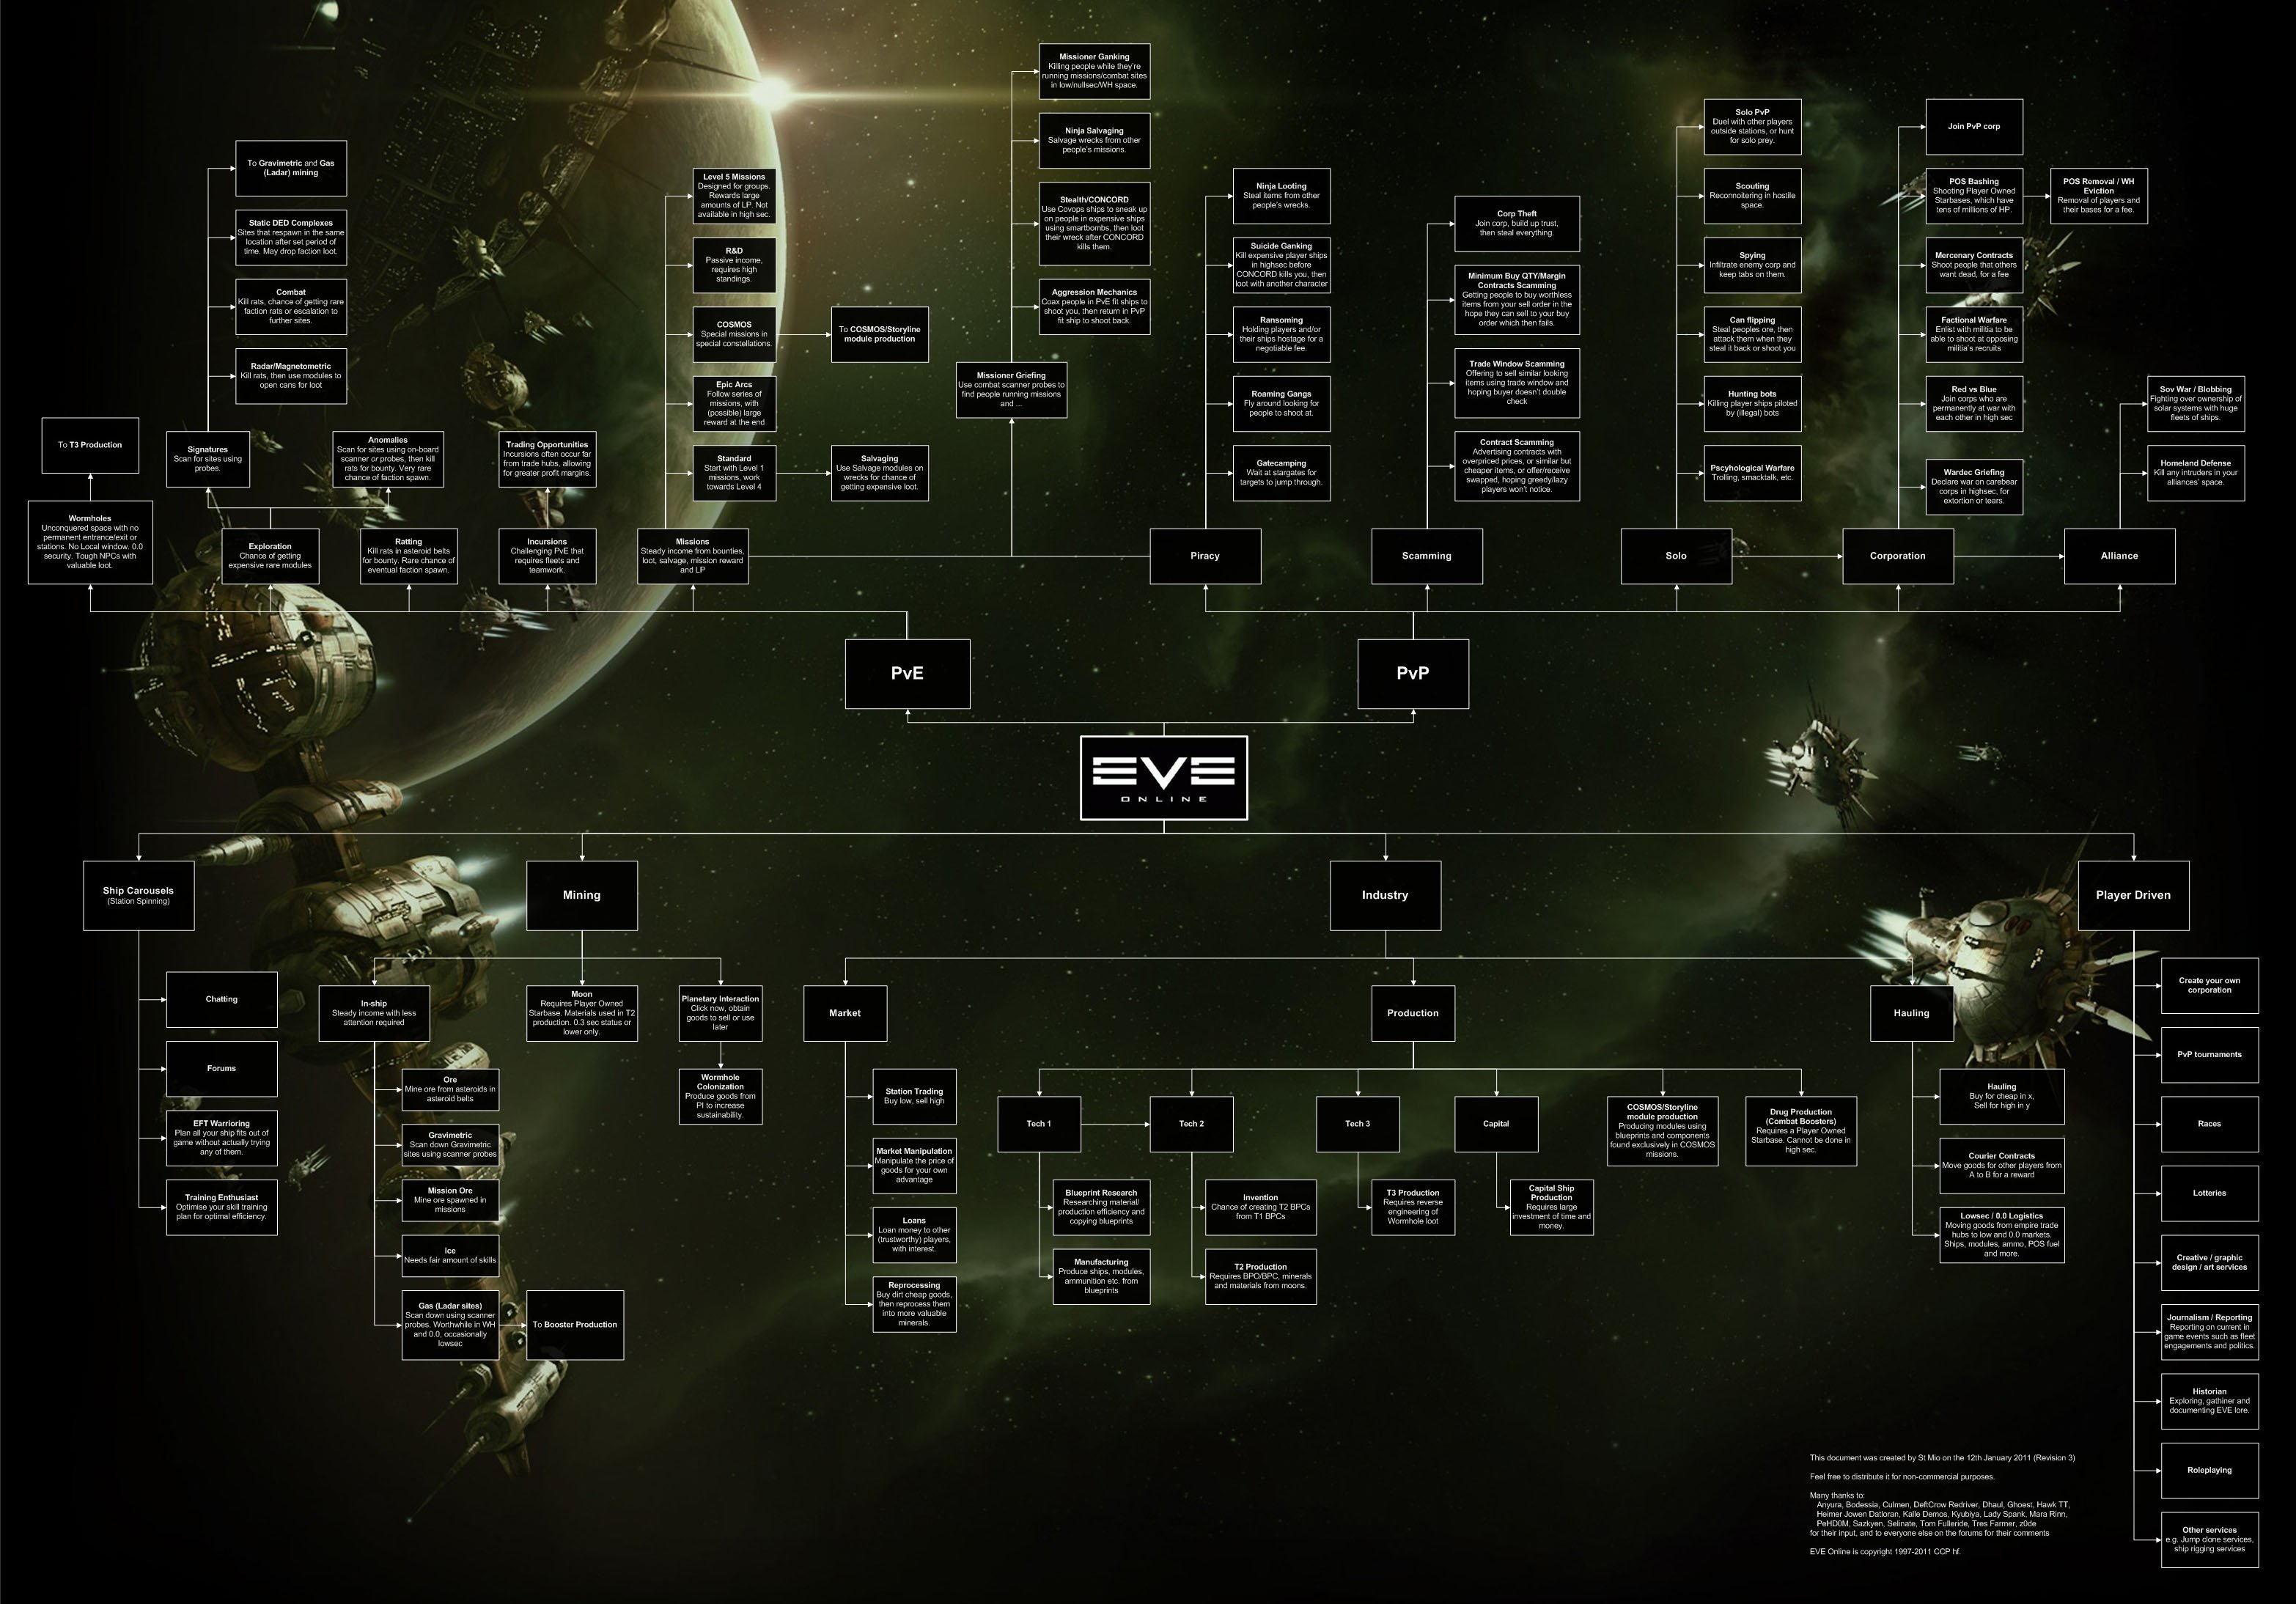 How I Learned To Love Spreadsheets In Space   Blog.lmorchard.com Or Eve Online Mining Spreadsheet